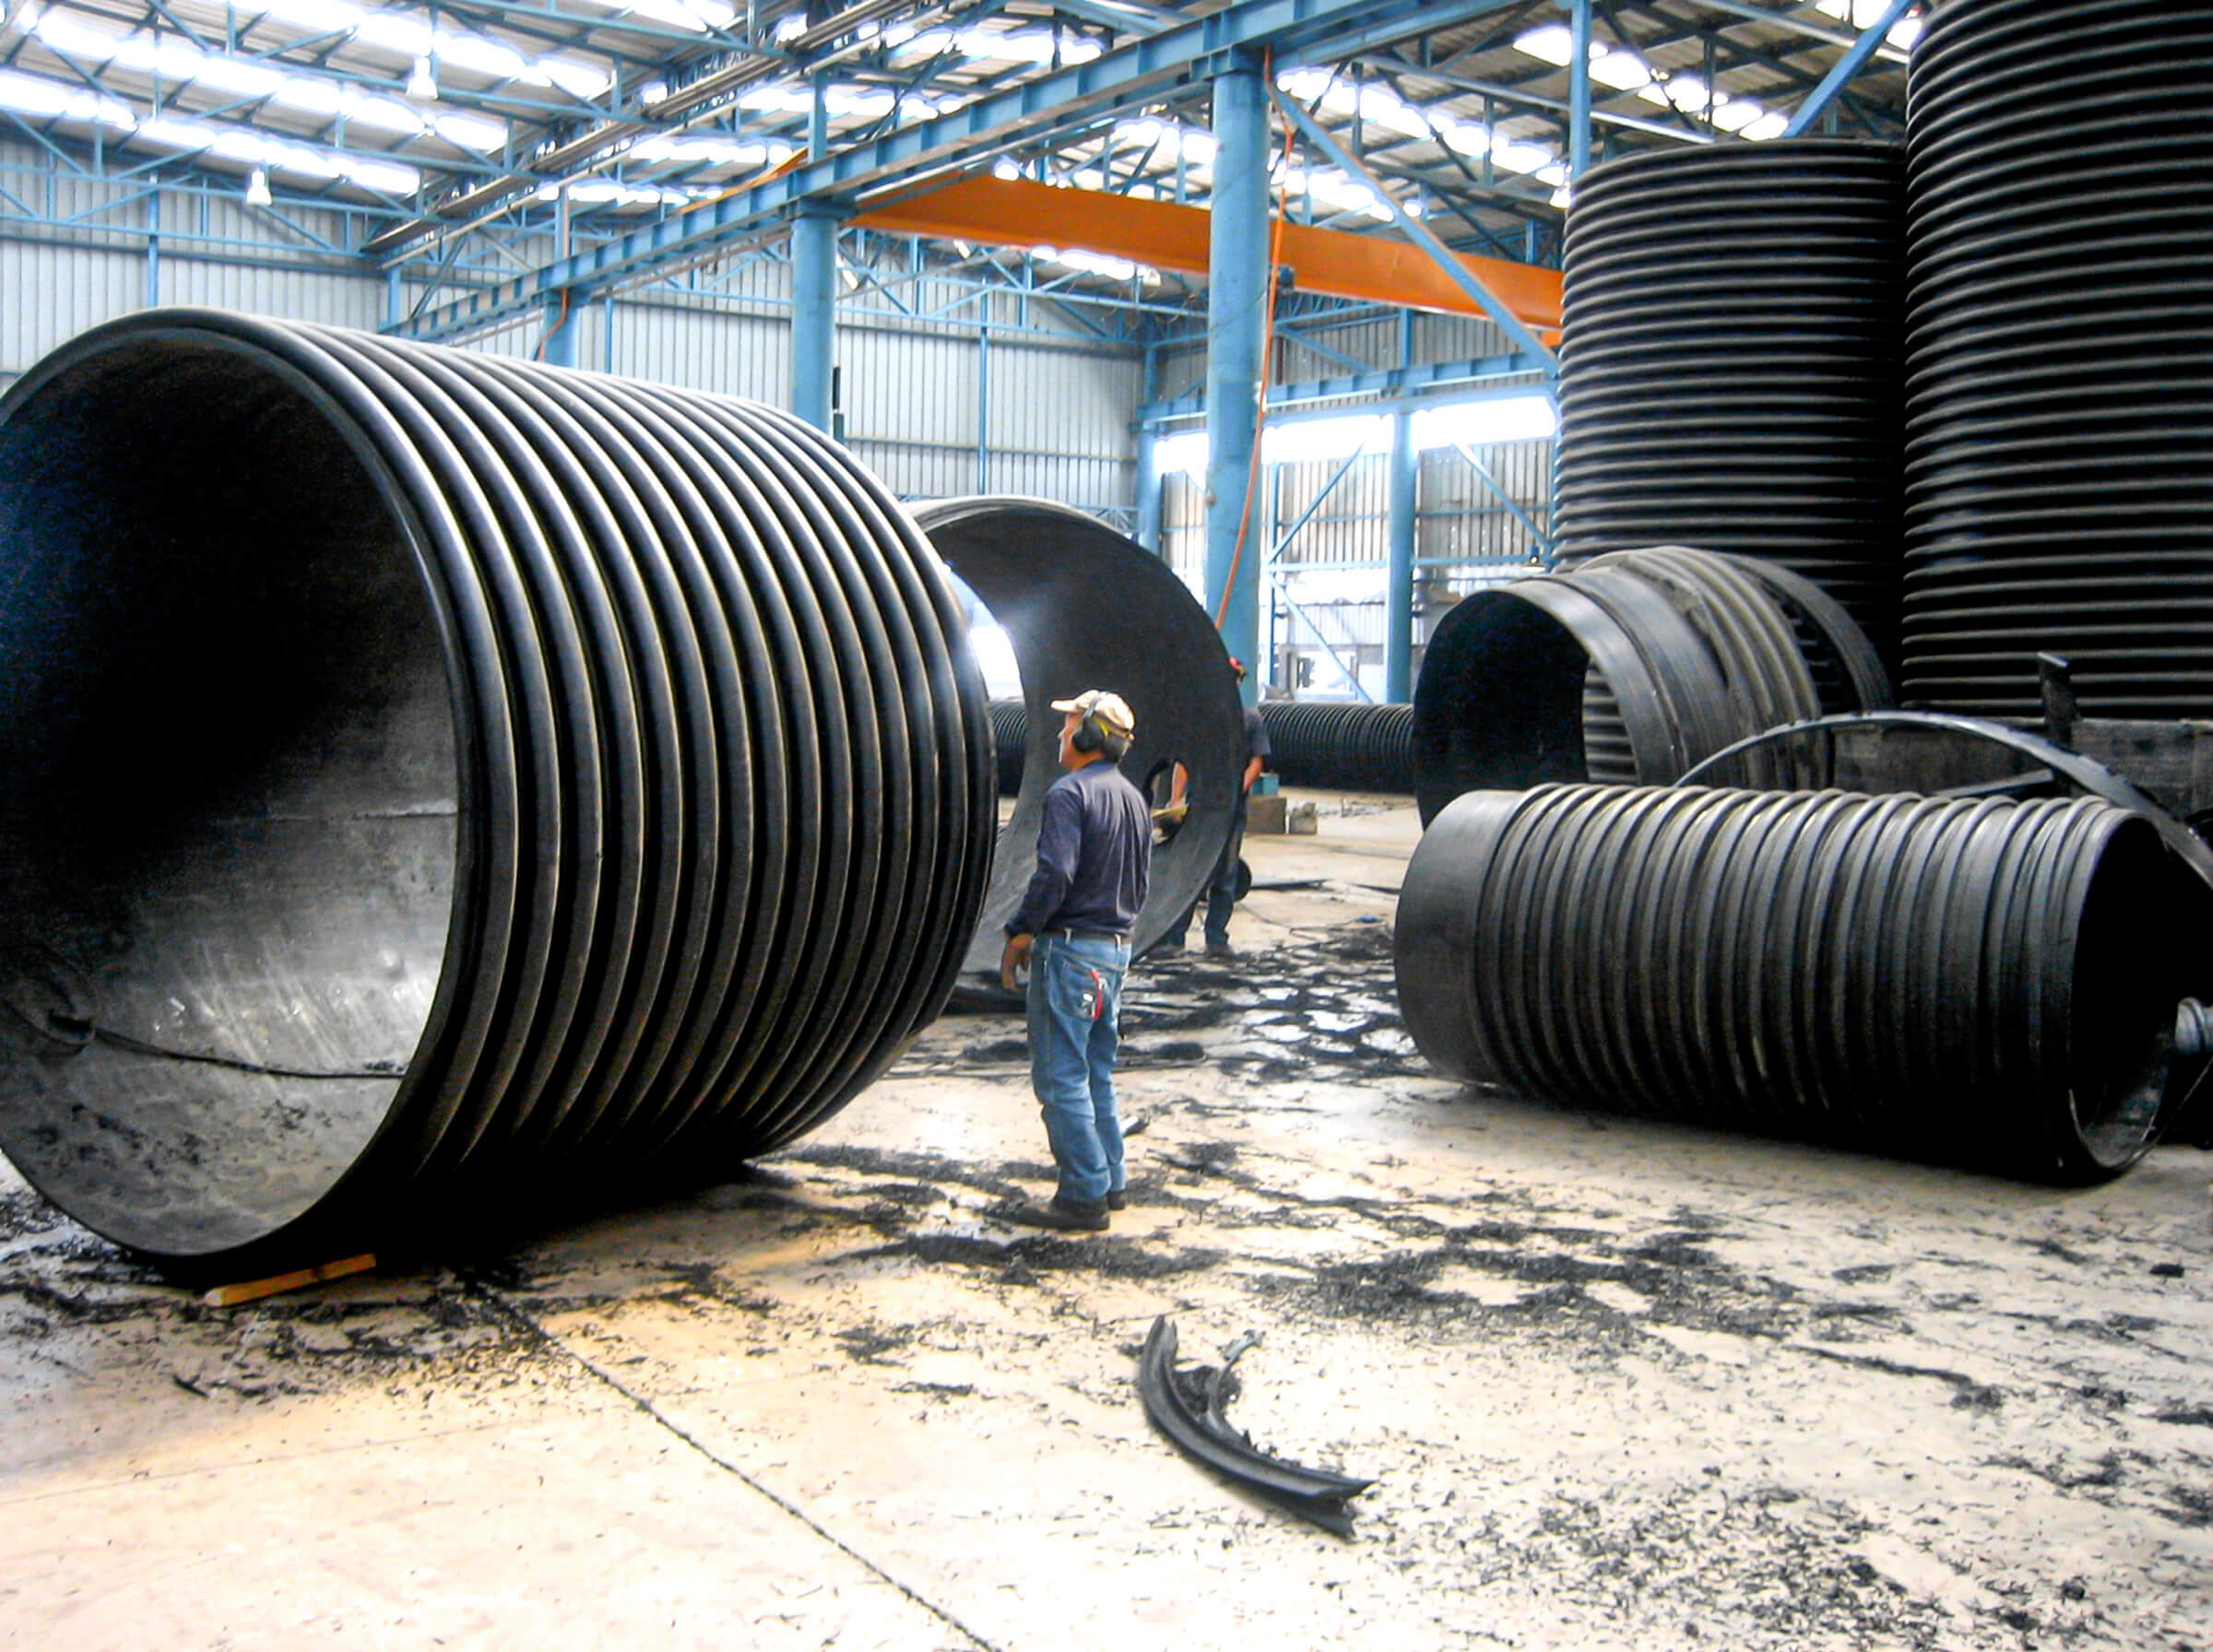 HDPE pipes for sewage systems